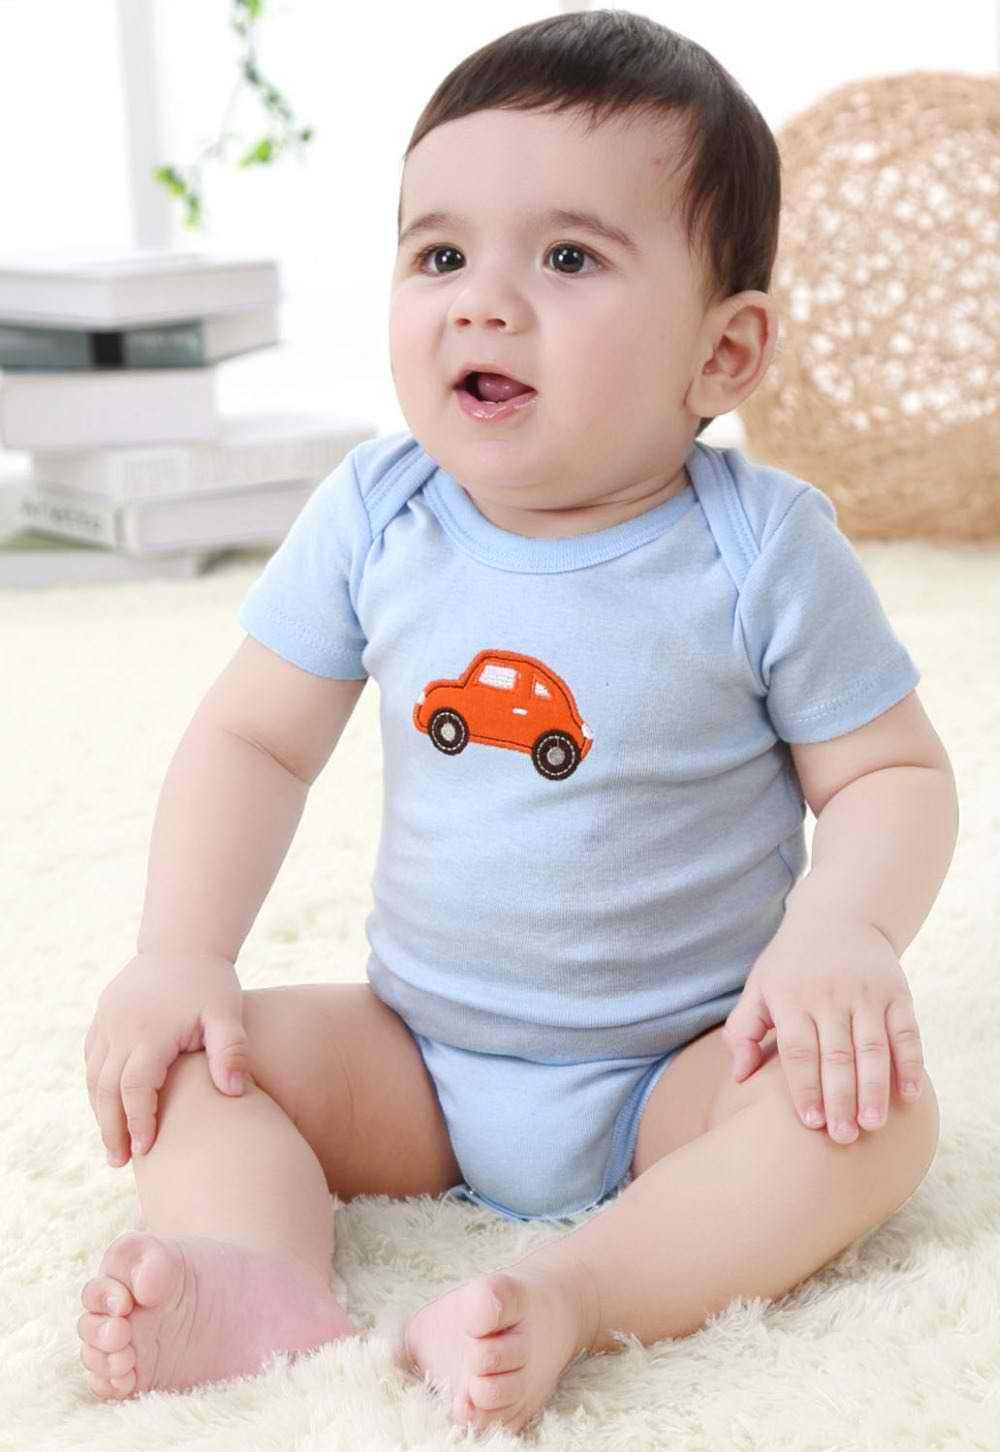 baby clothes come in unisex designs